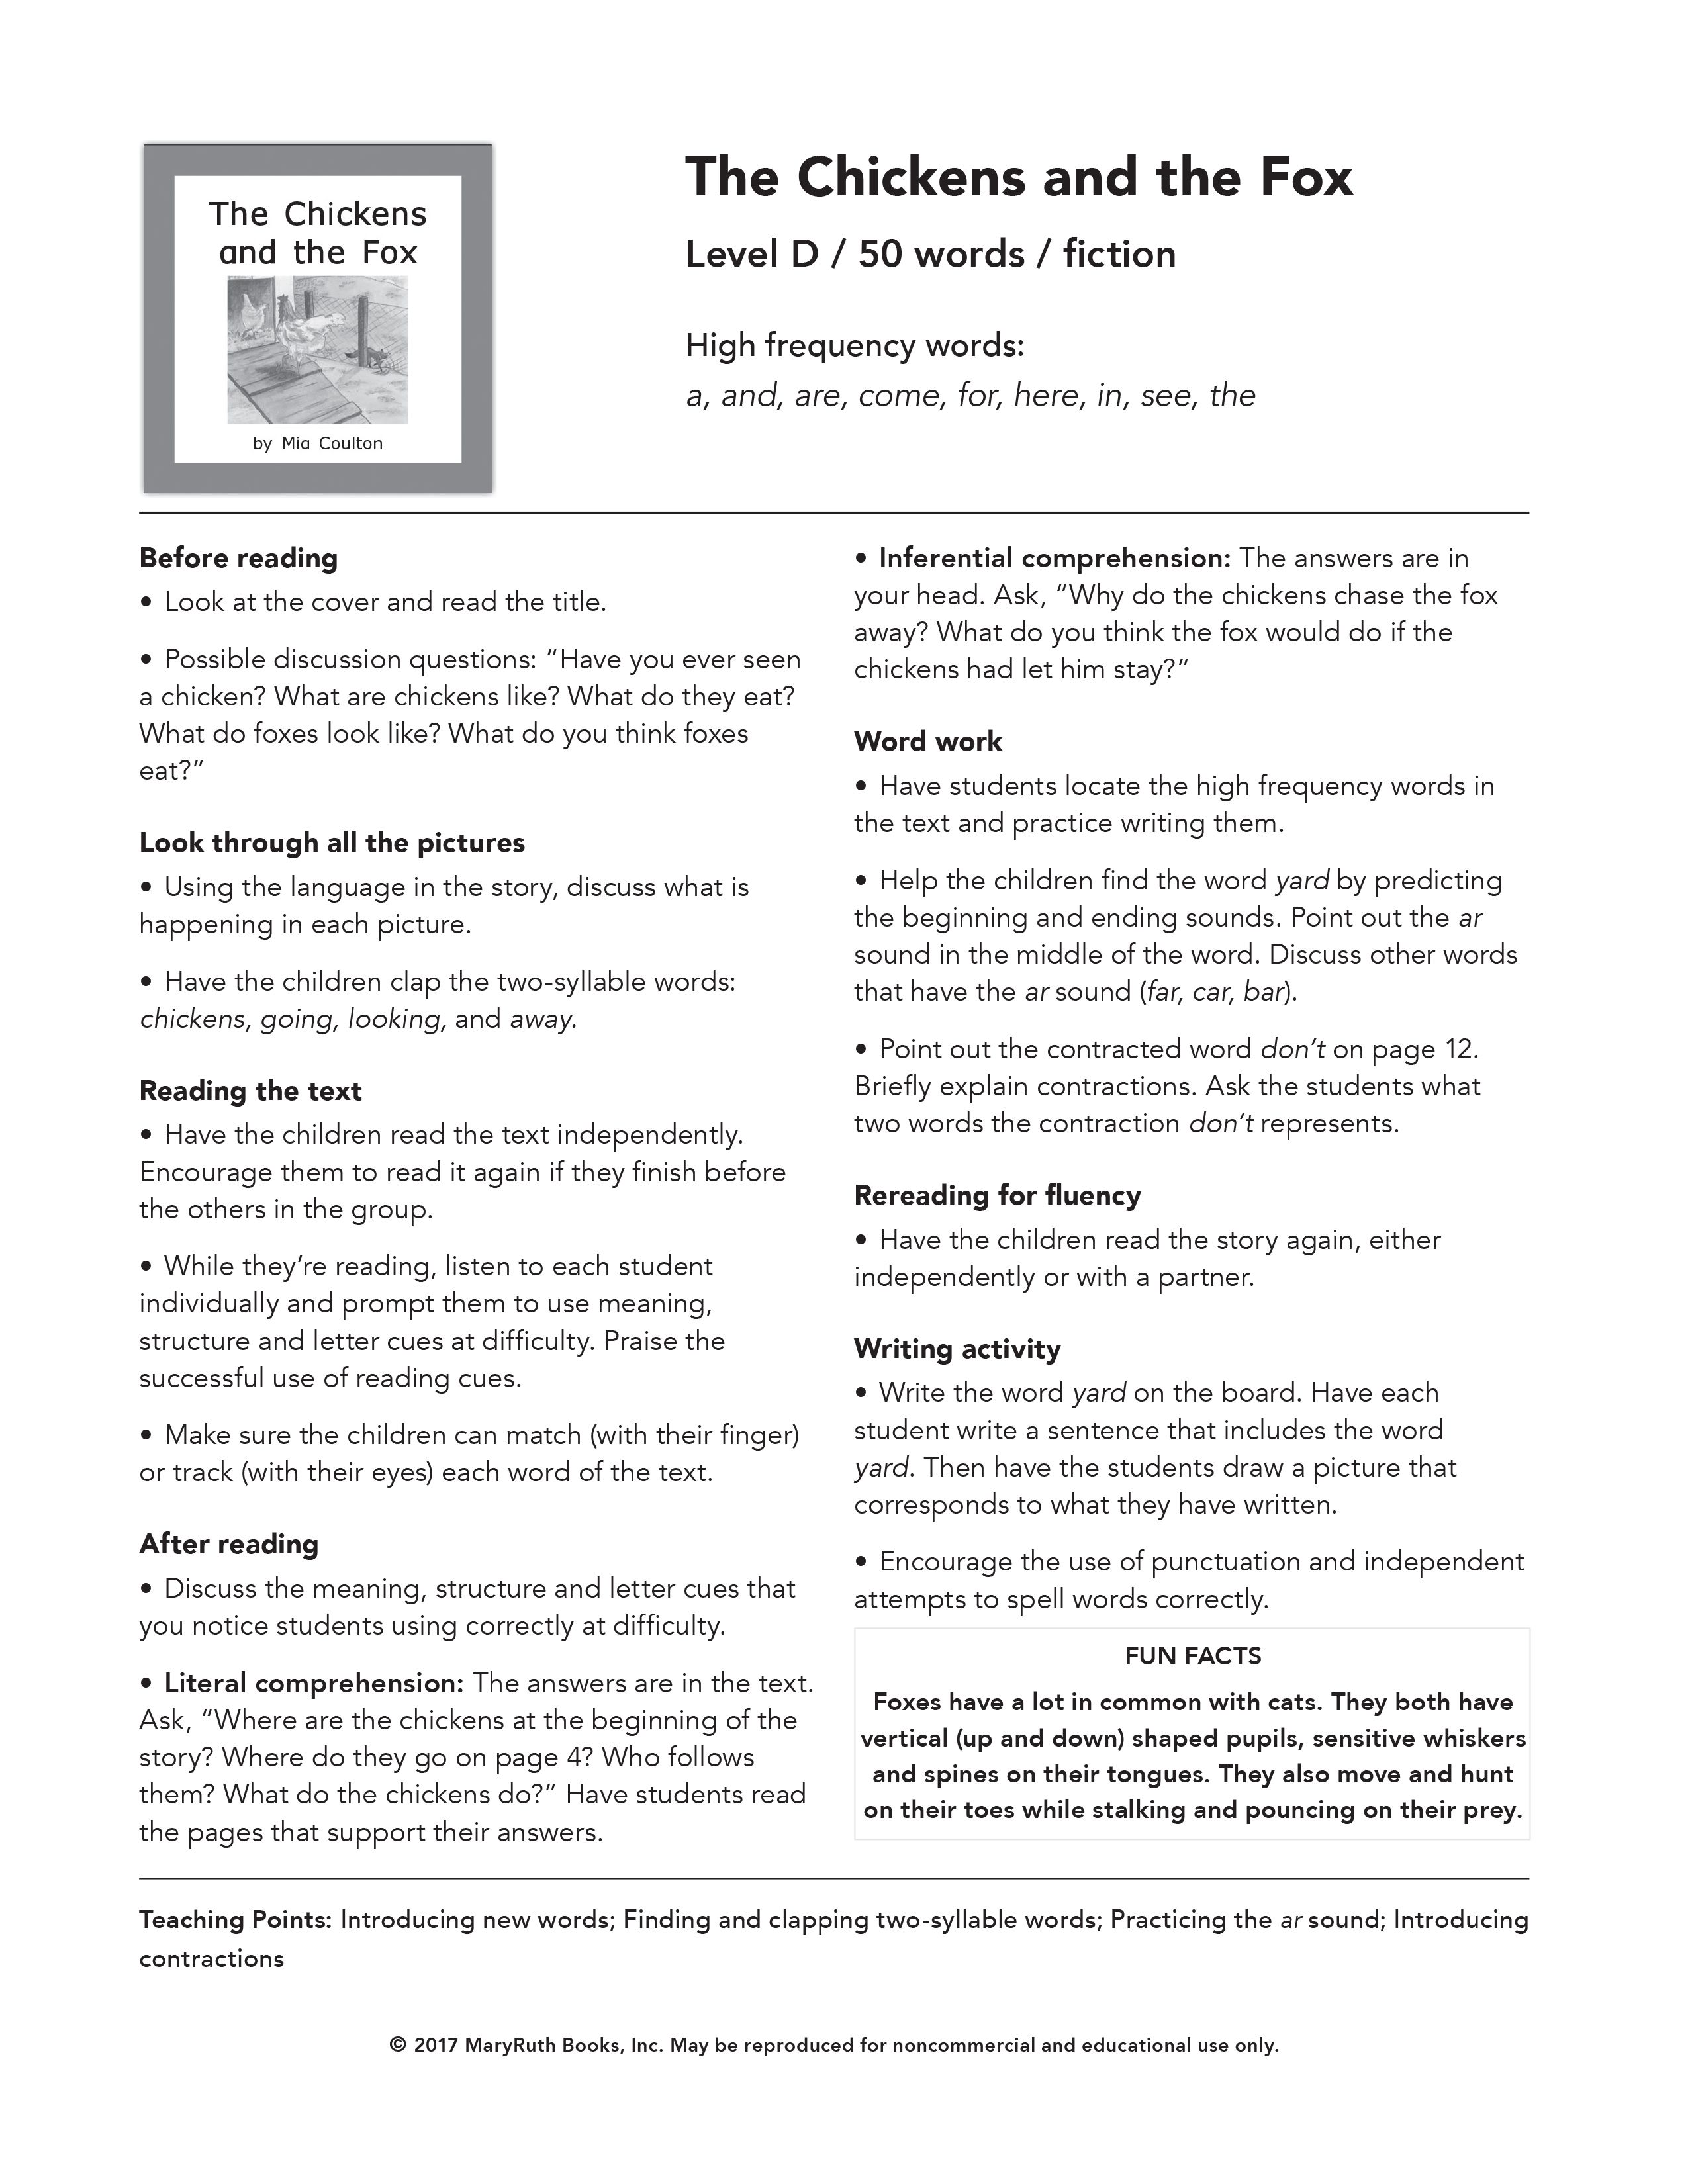 Pin By Maryruth Books On Free Leveled Lesson Plans